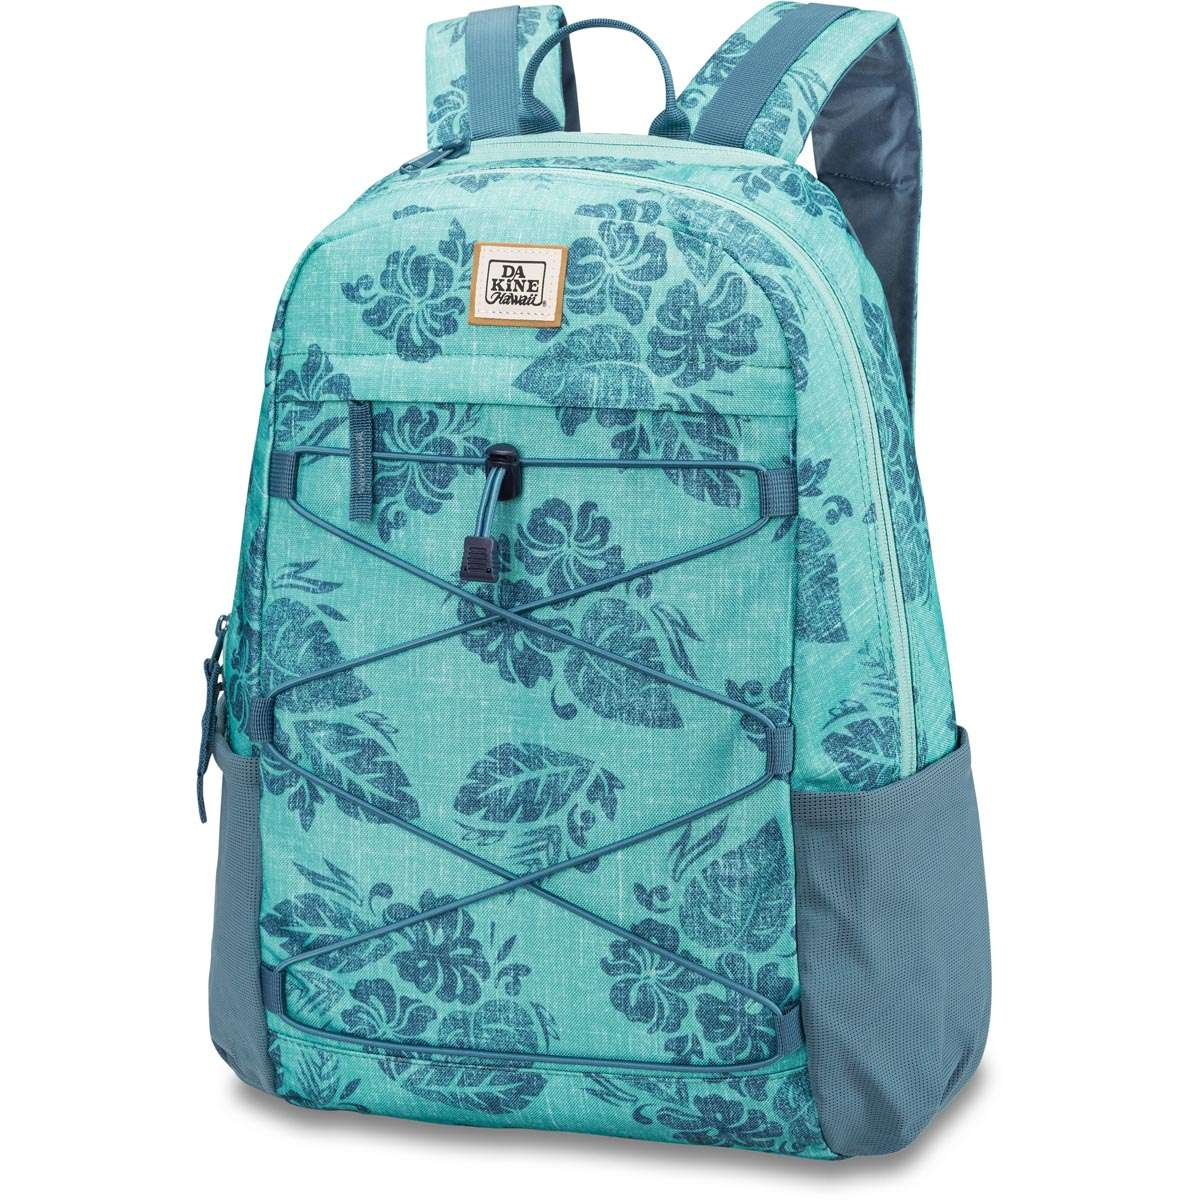 7bedb89c46251 Dakine Wonder 22L Backpack Kalea